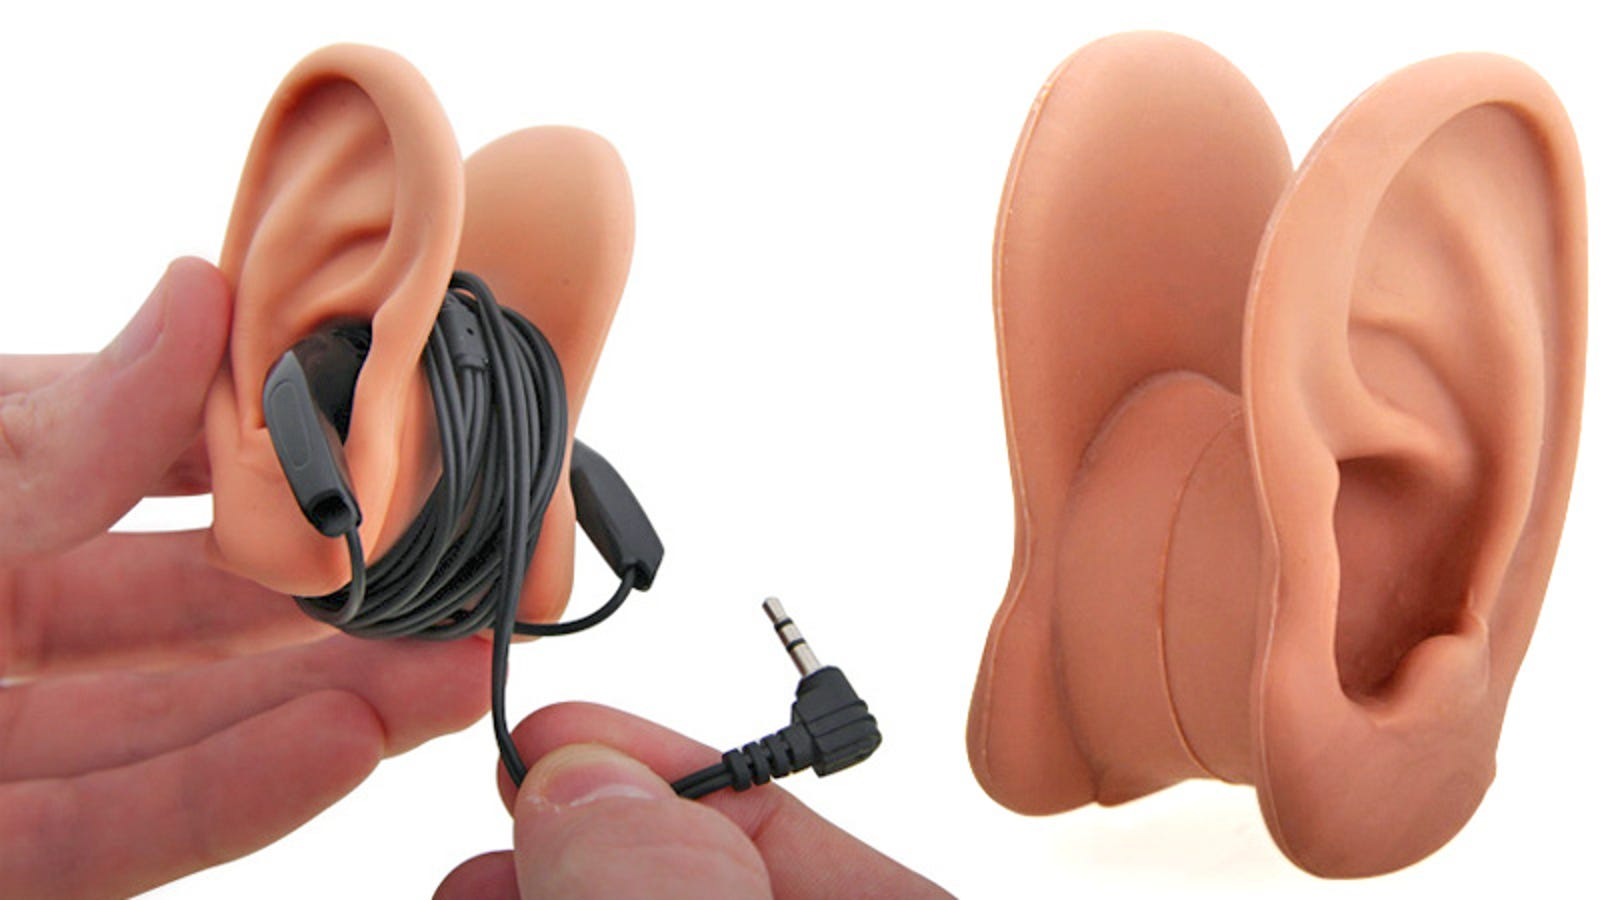 xiaomi earbuds piston - Where Better To Store Your Earbuds Than On a Pair Of Ears?